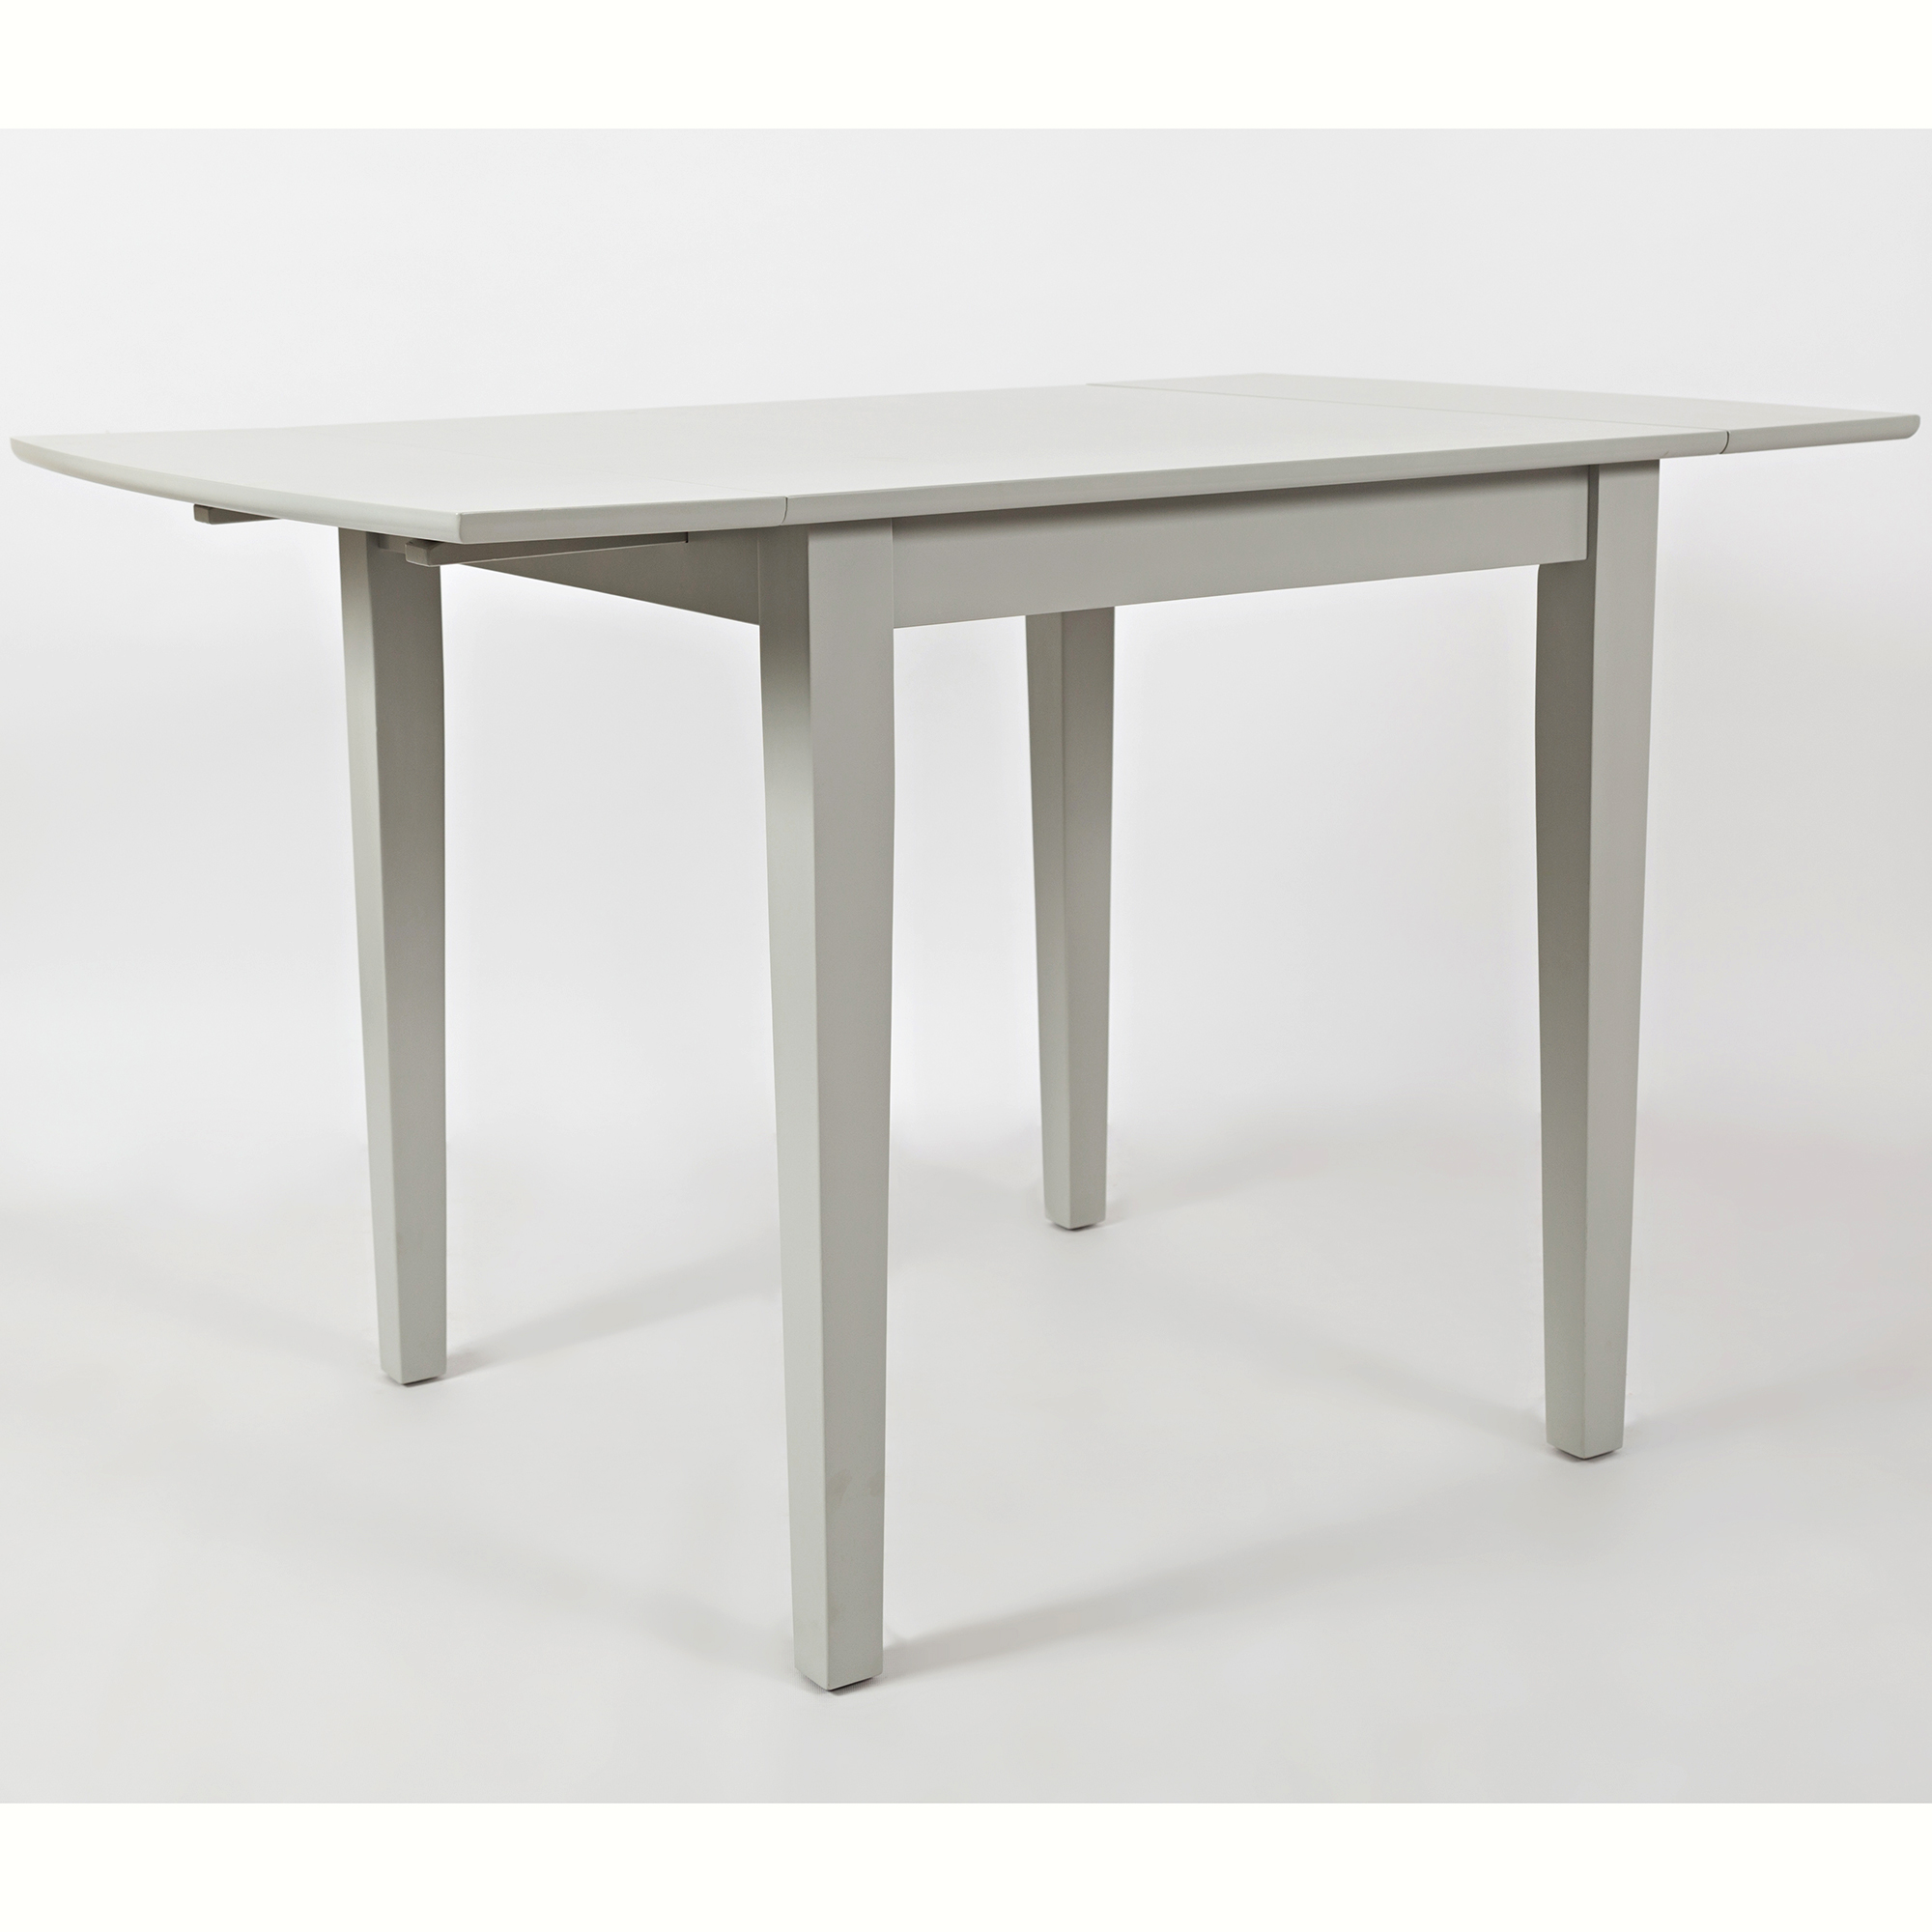 Jofran 1639 48 Everyday Classics Double Drop Leaf Dining Table in Dove